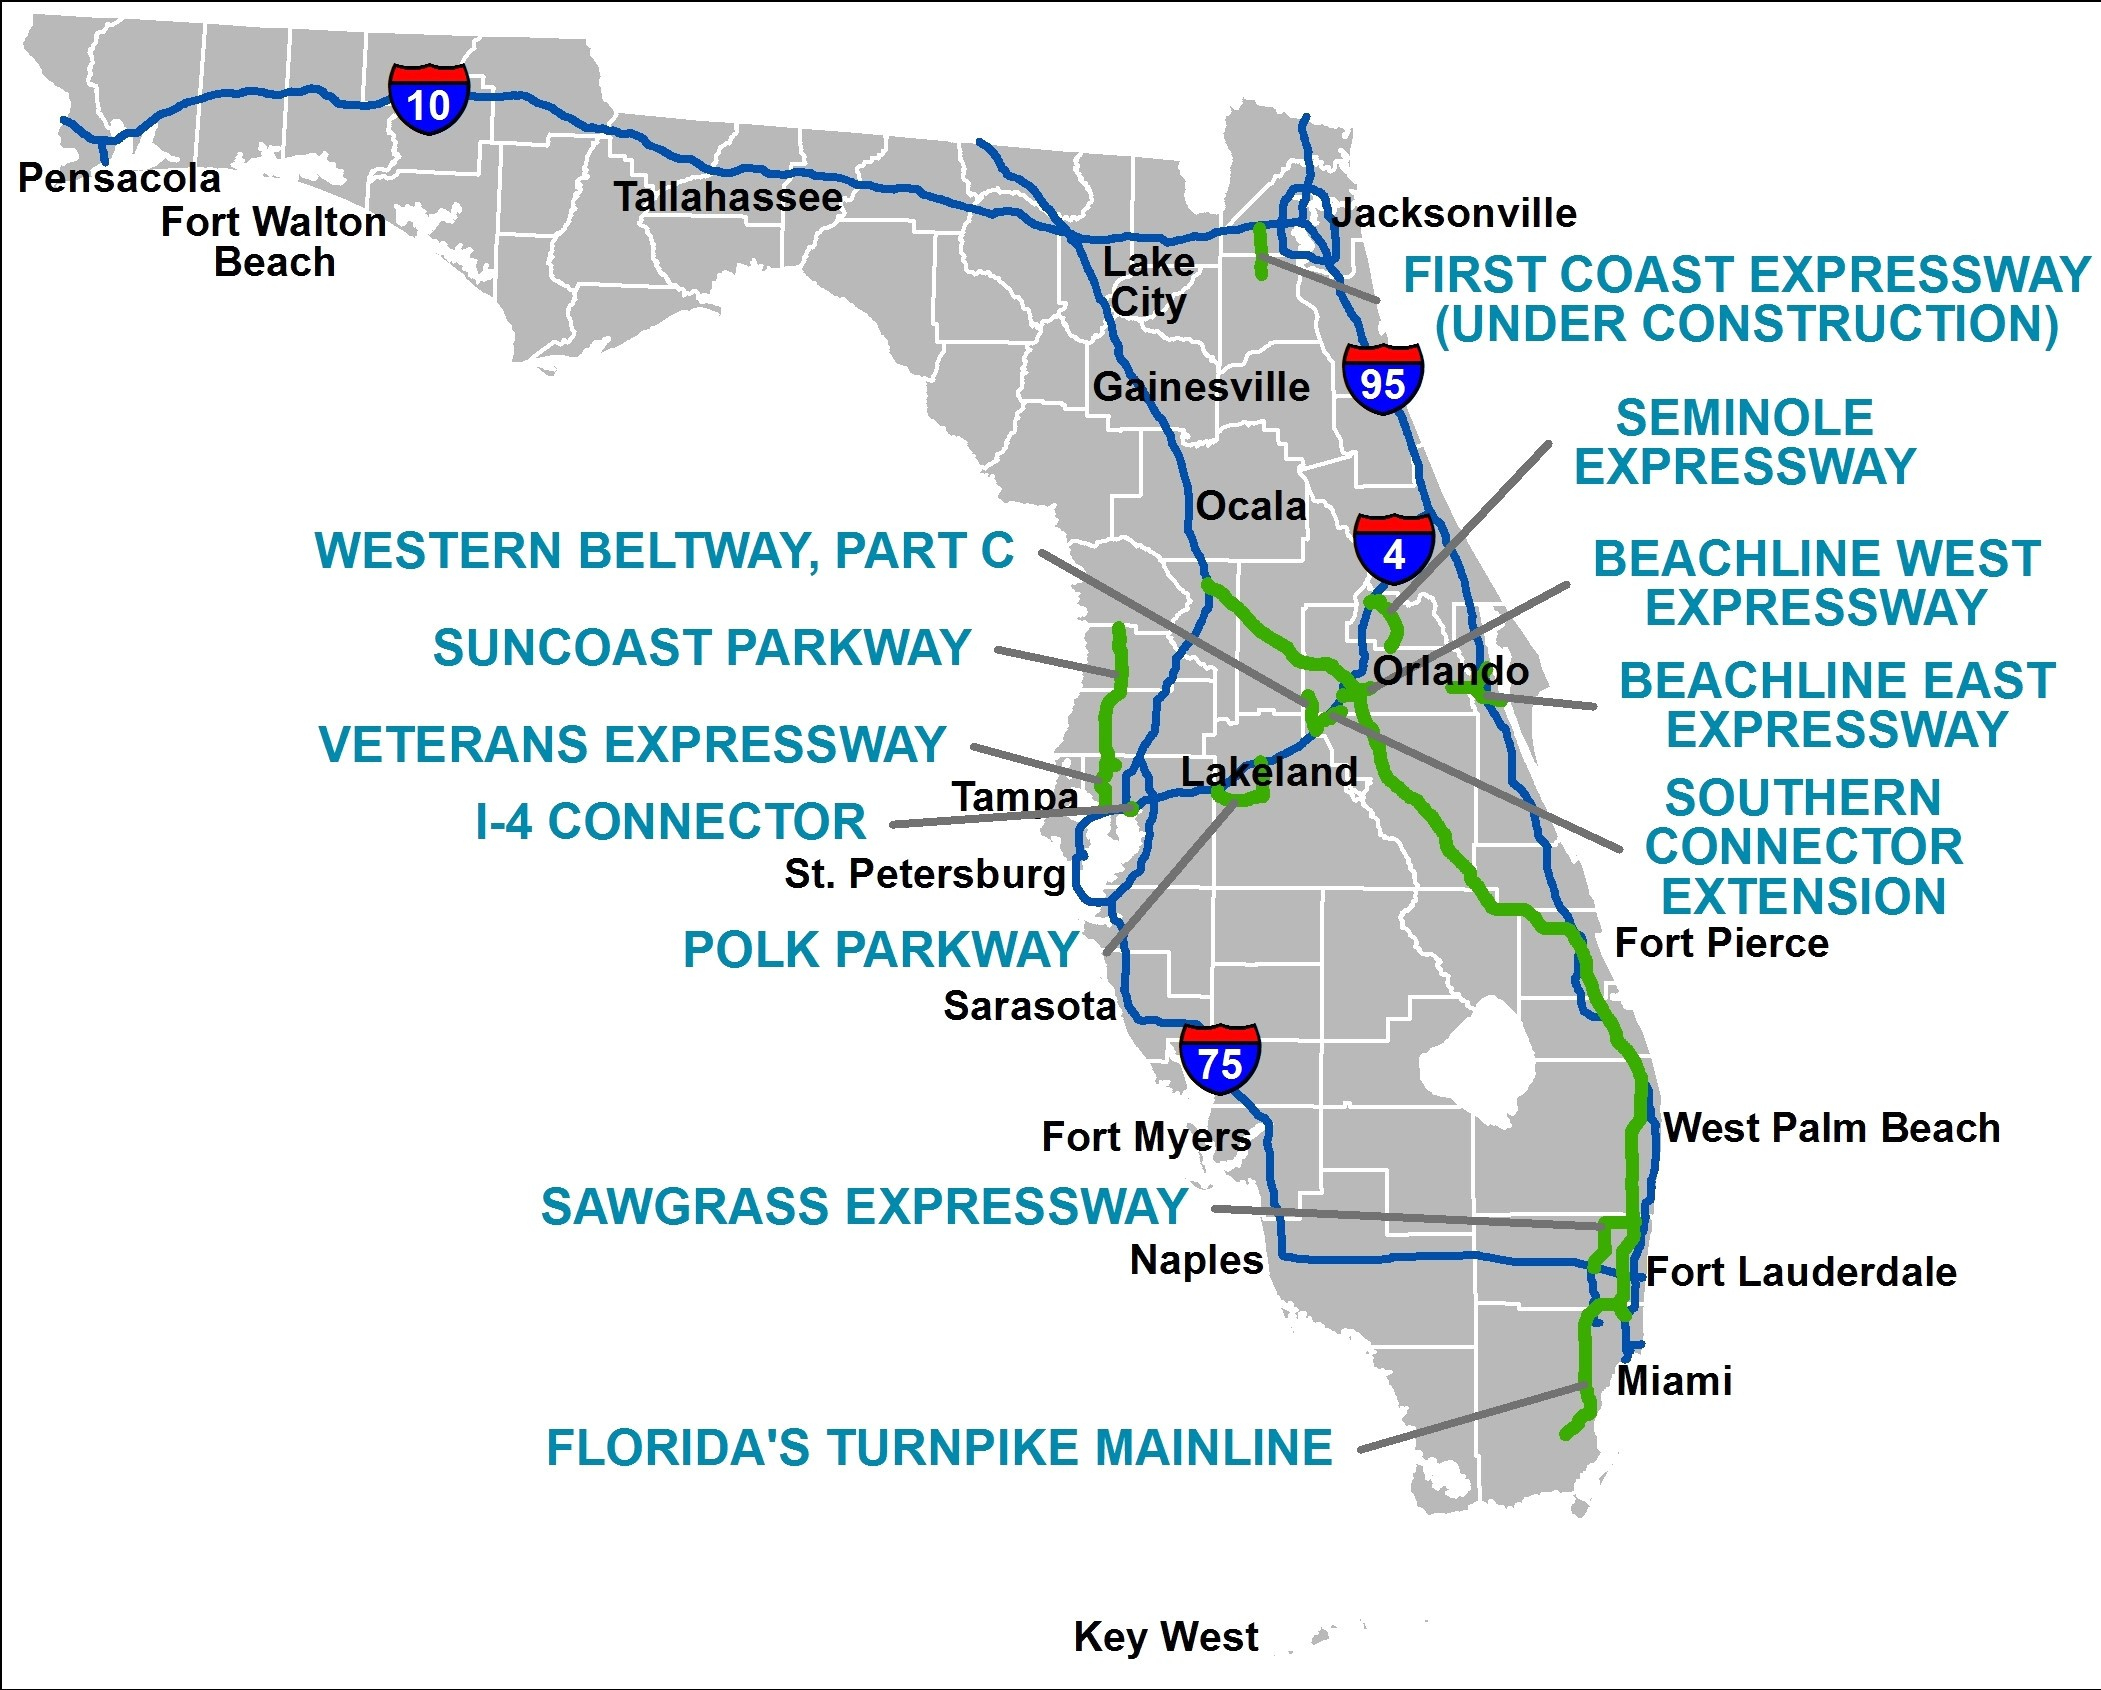 Gulf Coast Cities In Florida Map Florida Panhandle Cities Map - Map Of Florida Panhandle Gulf Coast